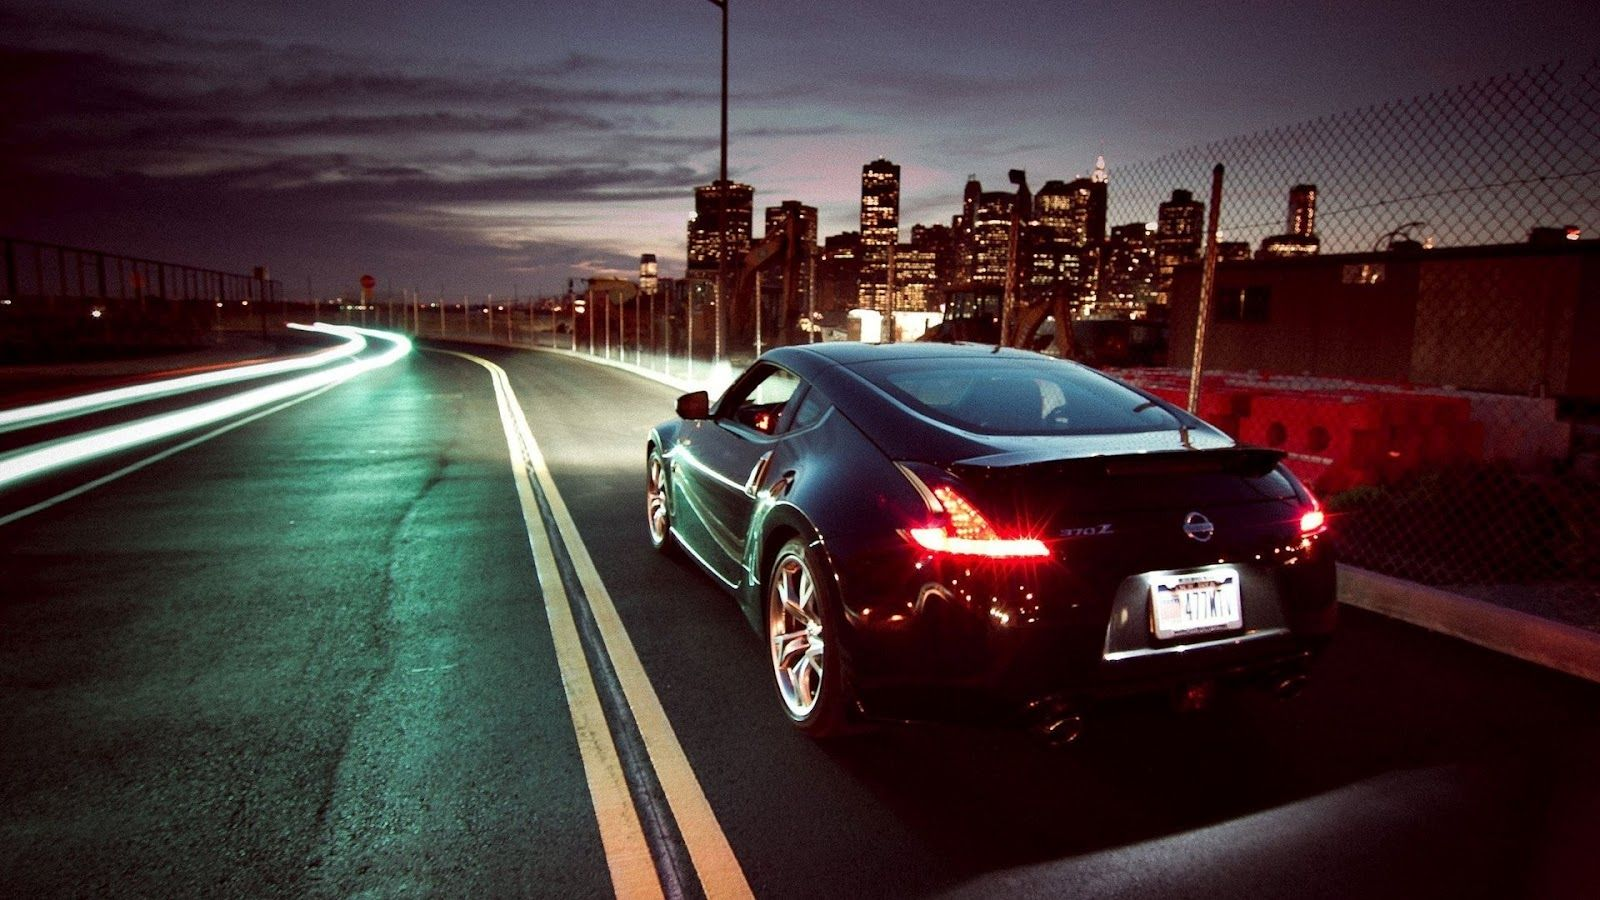 2014 nissan 370z nismo car wallpapers back to 2014 nissan 370z 2014 nissan 370z nismo car wallpapers back to 2014 nissan 370z nismo wallpaper vanachro Gallery